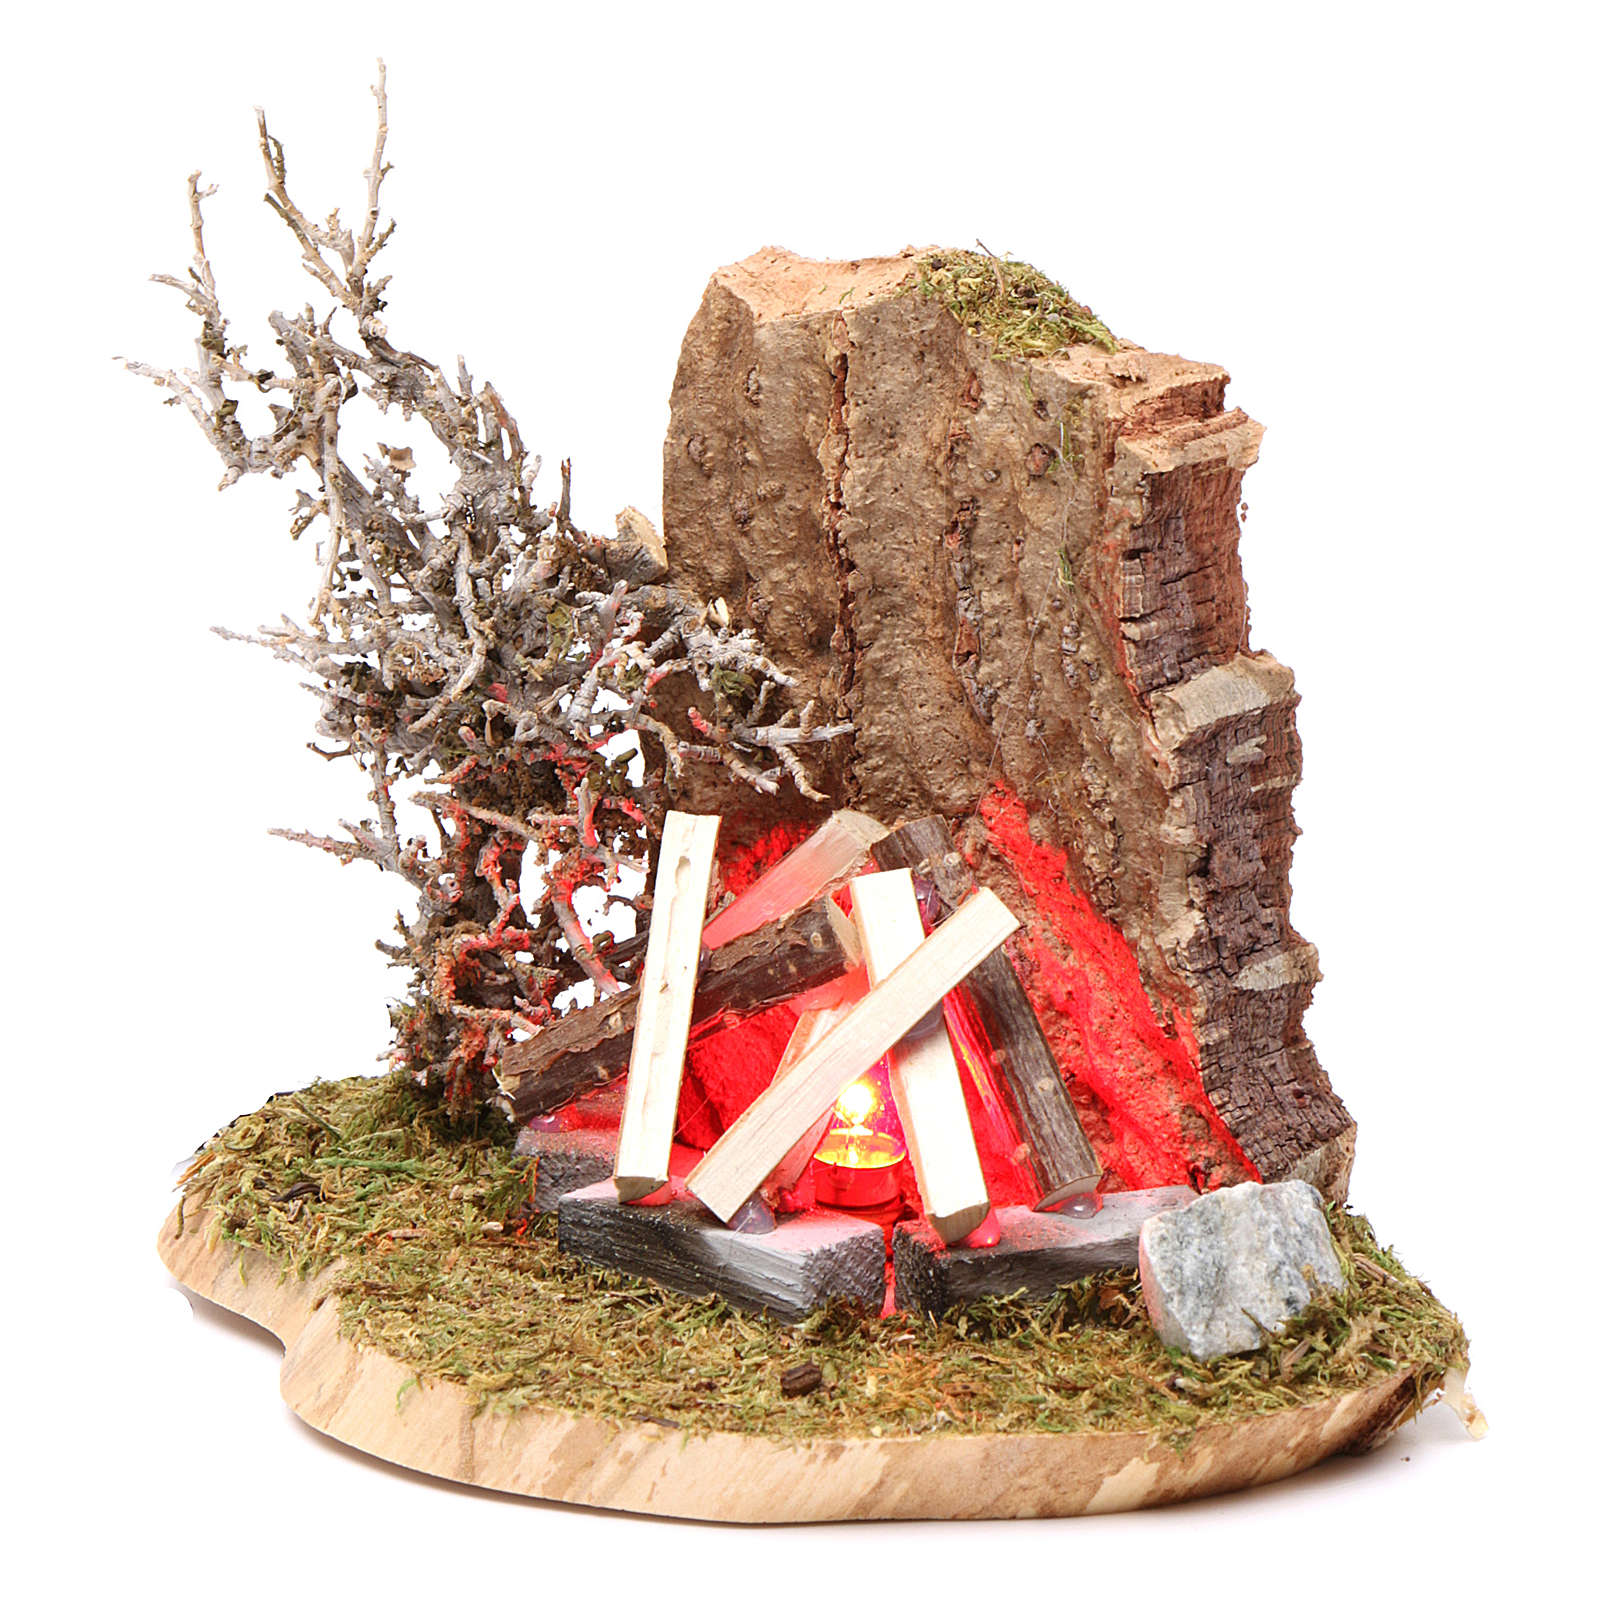 Camp Fire for Nativity 10-12 cm with LED flame effect 3.5-4.5v 4